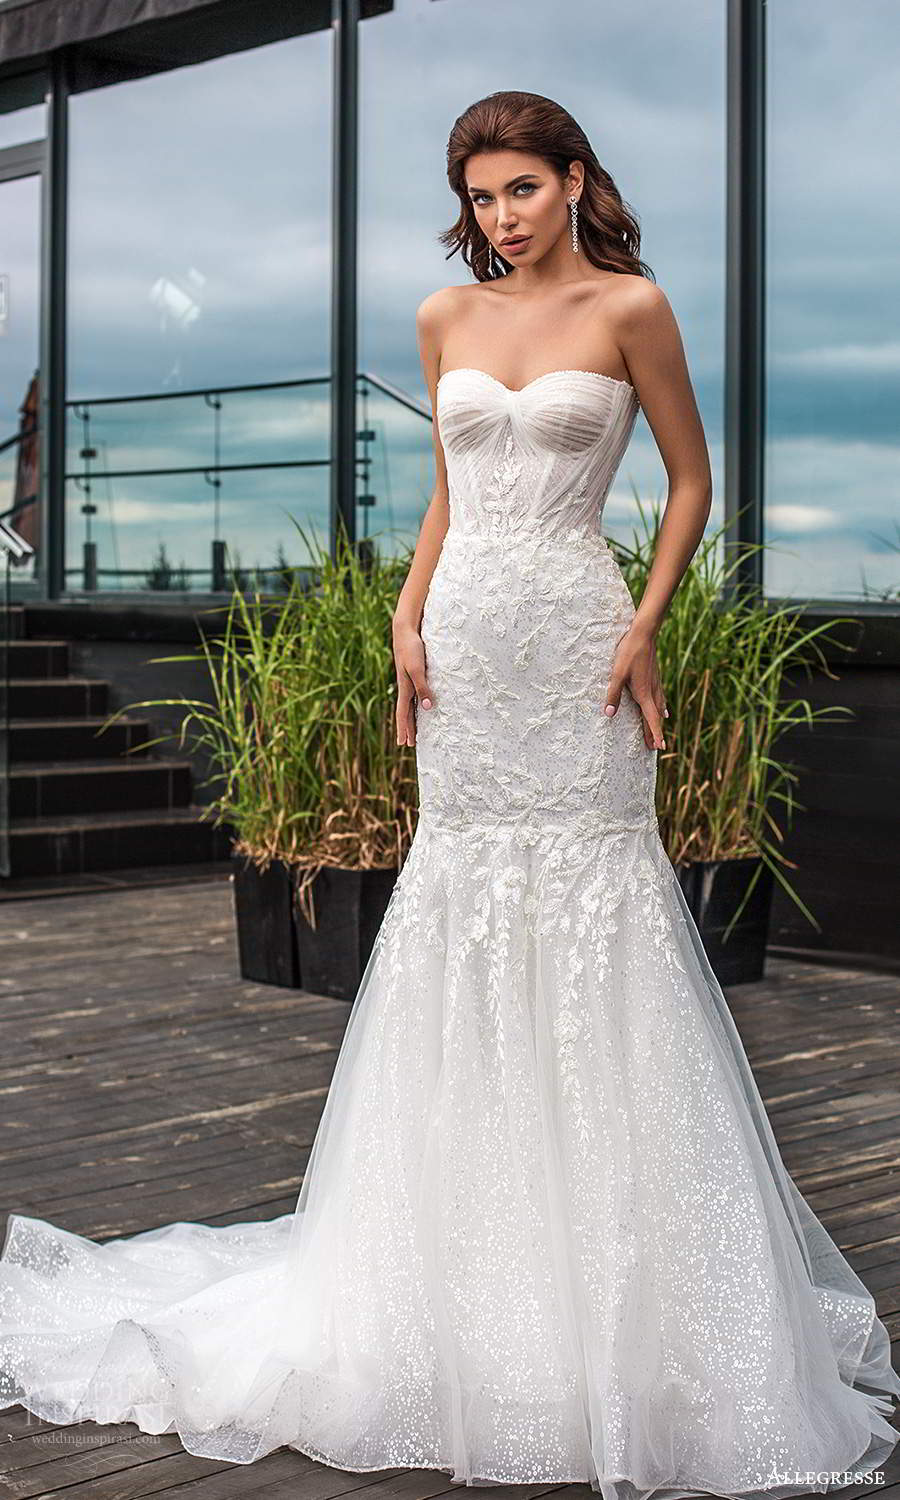 allegresse 2021 bridal strapless sweetheart neckline fully embellished fit flare wedding dress chapel train (4) mv